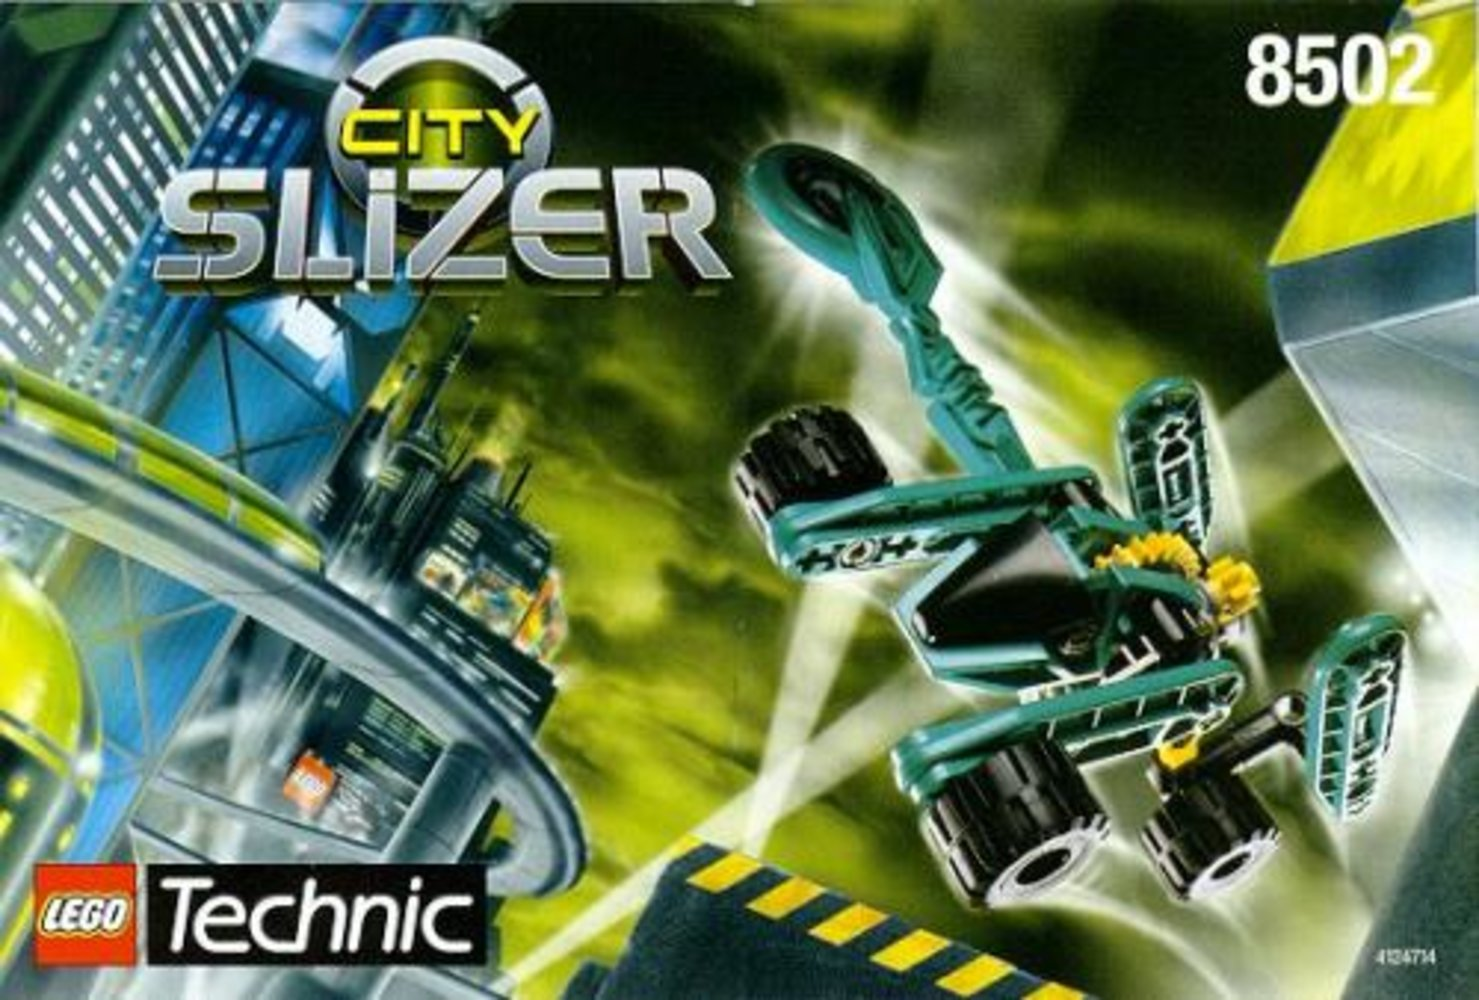 Turbo / City Slizer